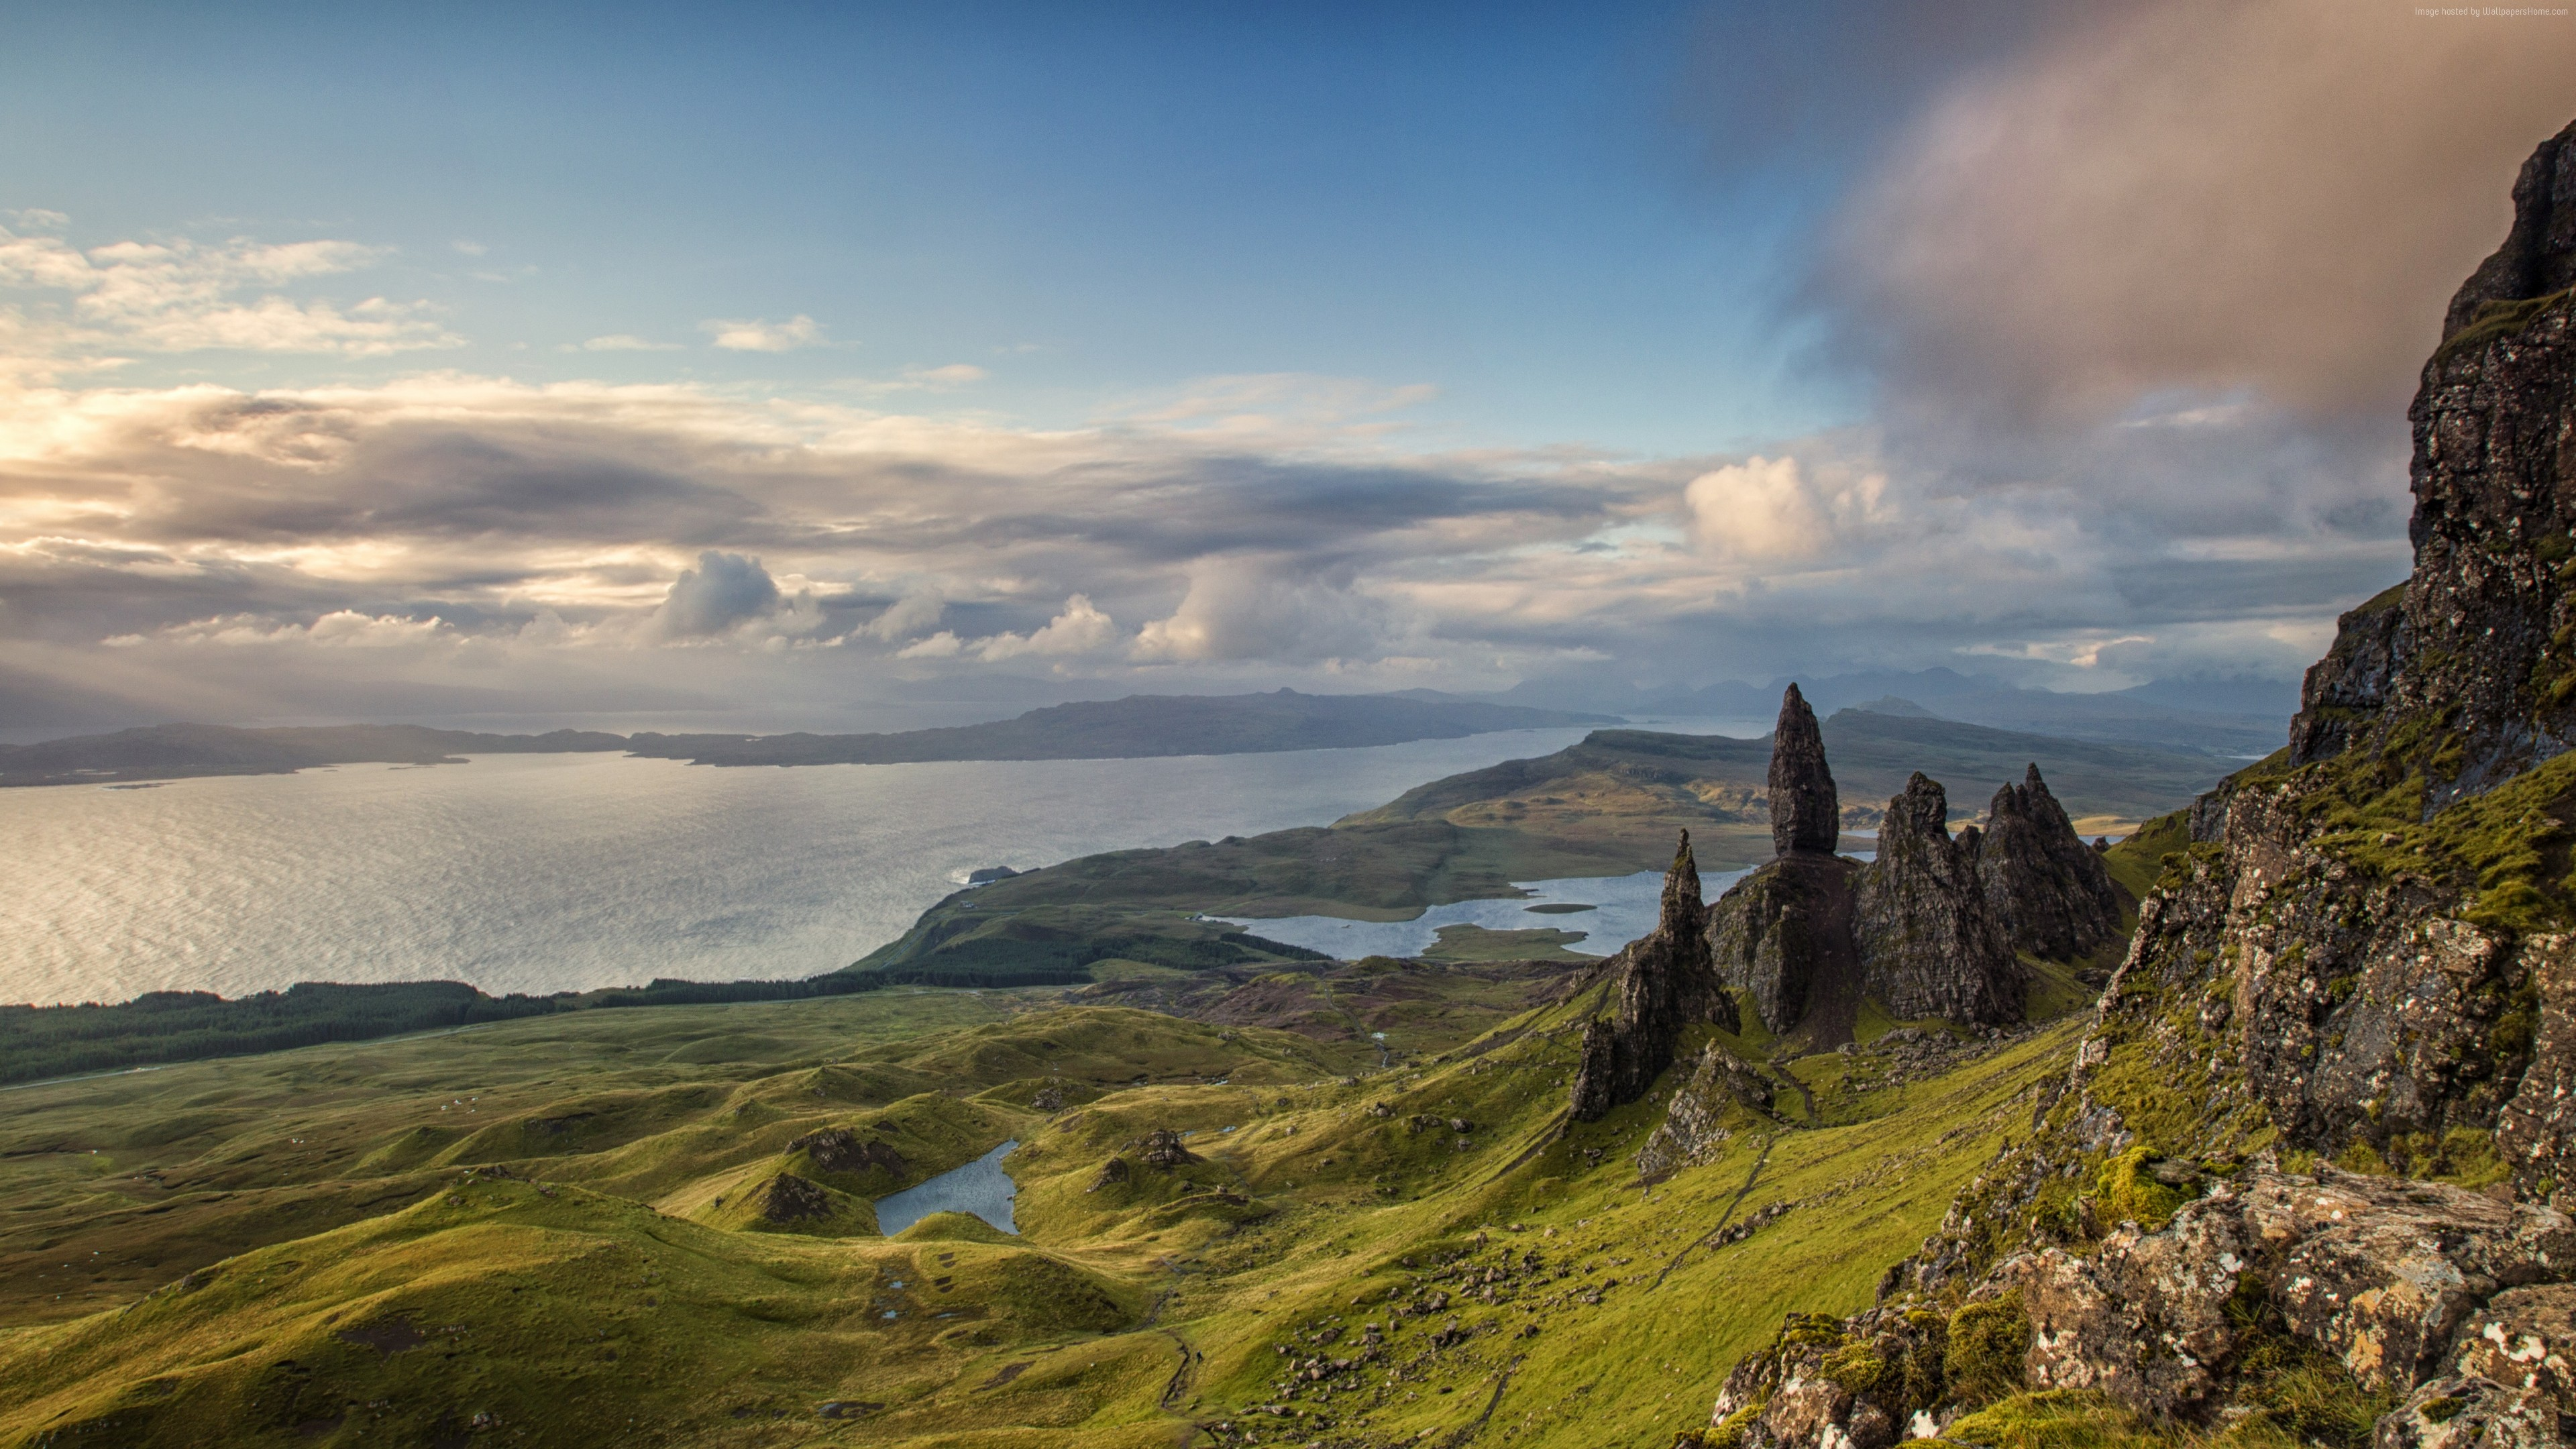 Wallpaper Isle of Skye, Scotland, Europe, nature, mountains, sky, 4k, Nature